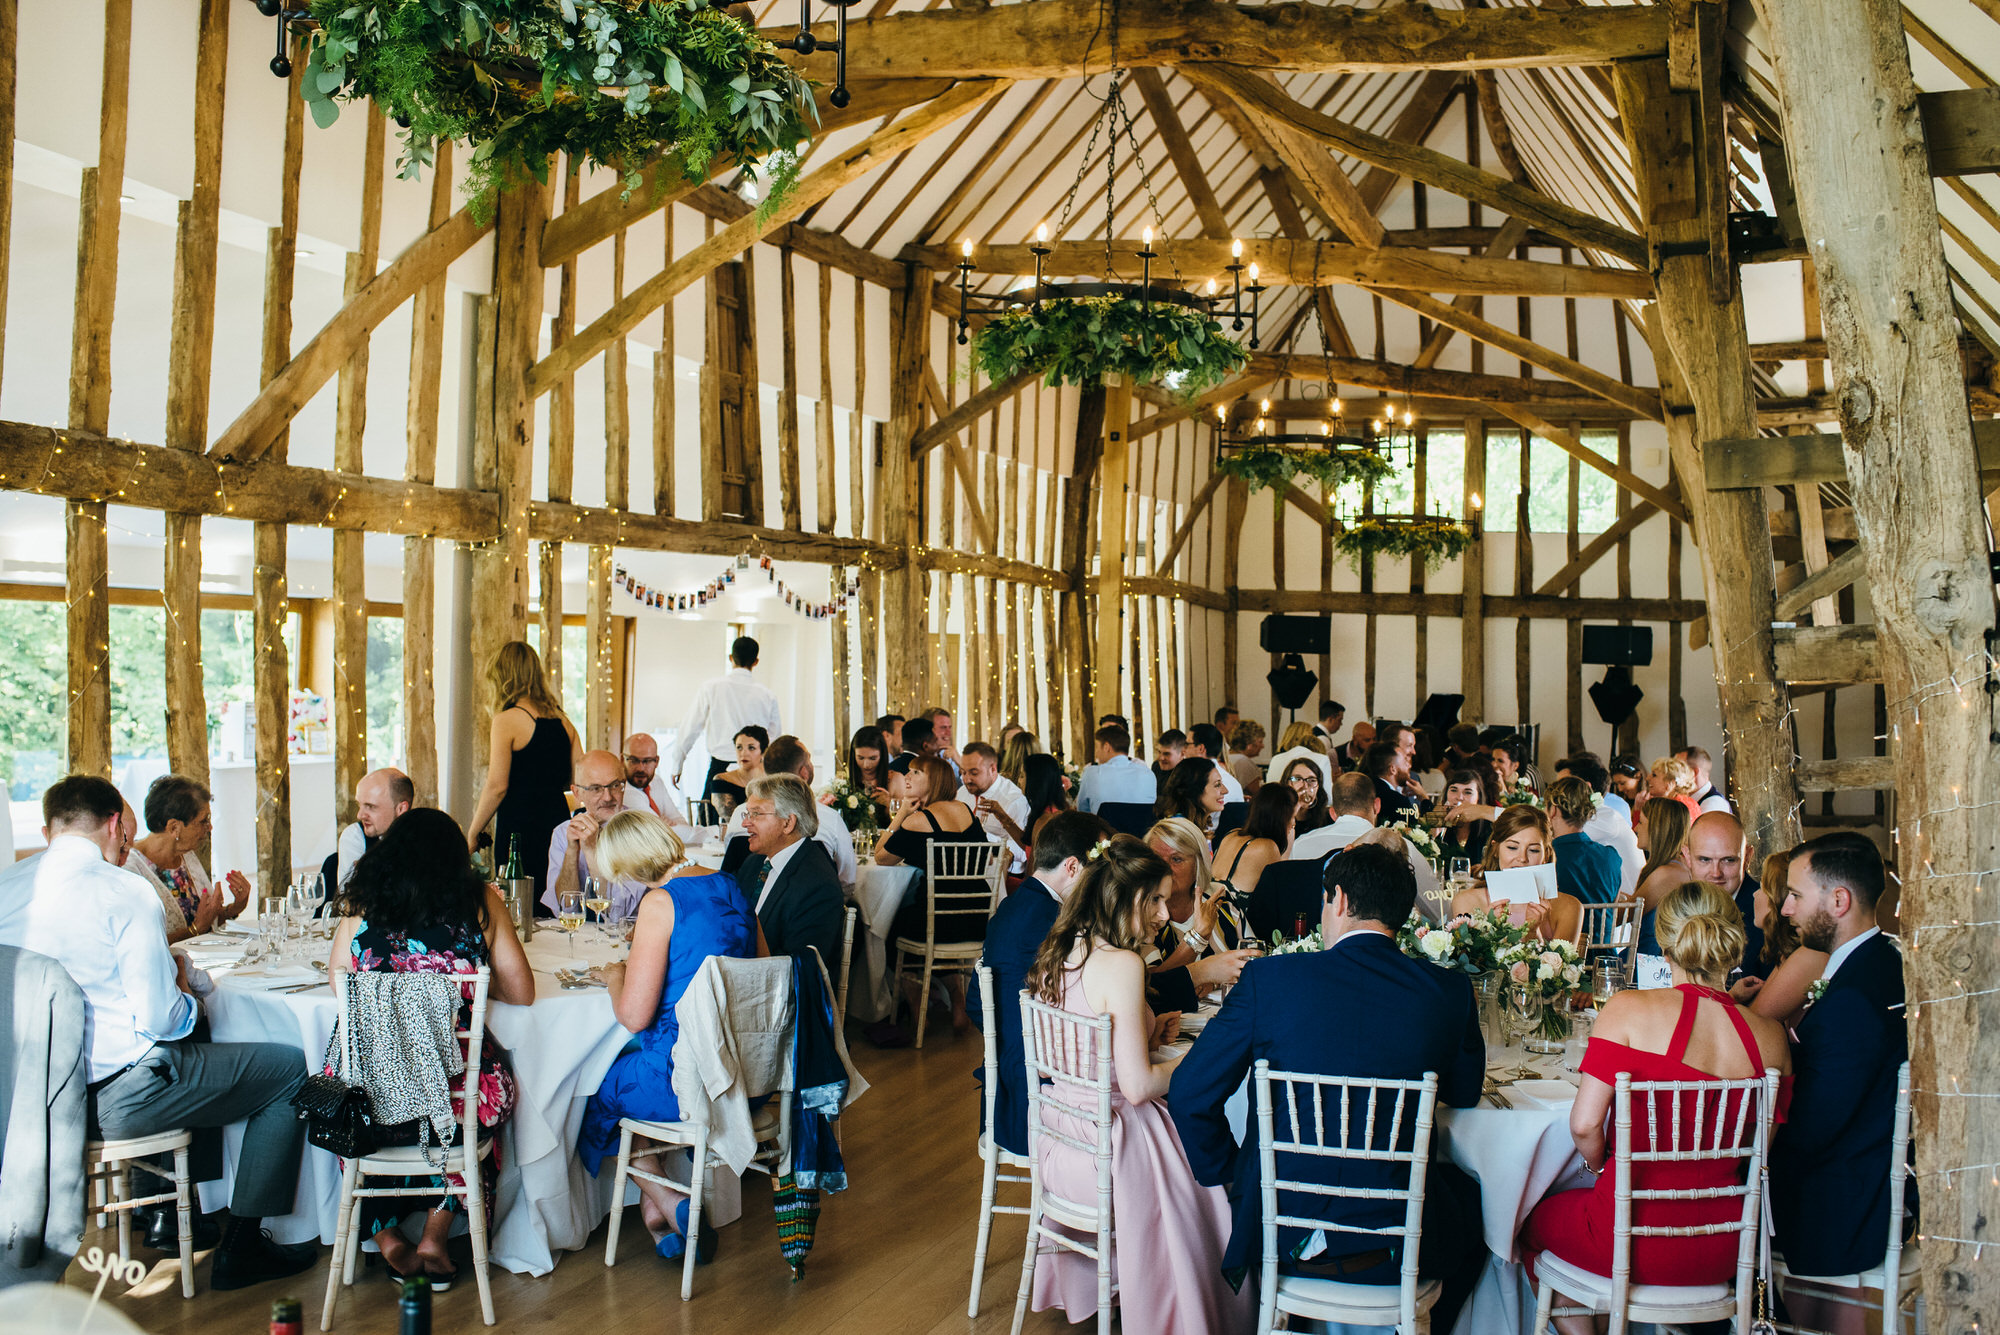 Colville hall wedding by simon biffen photography 35